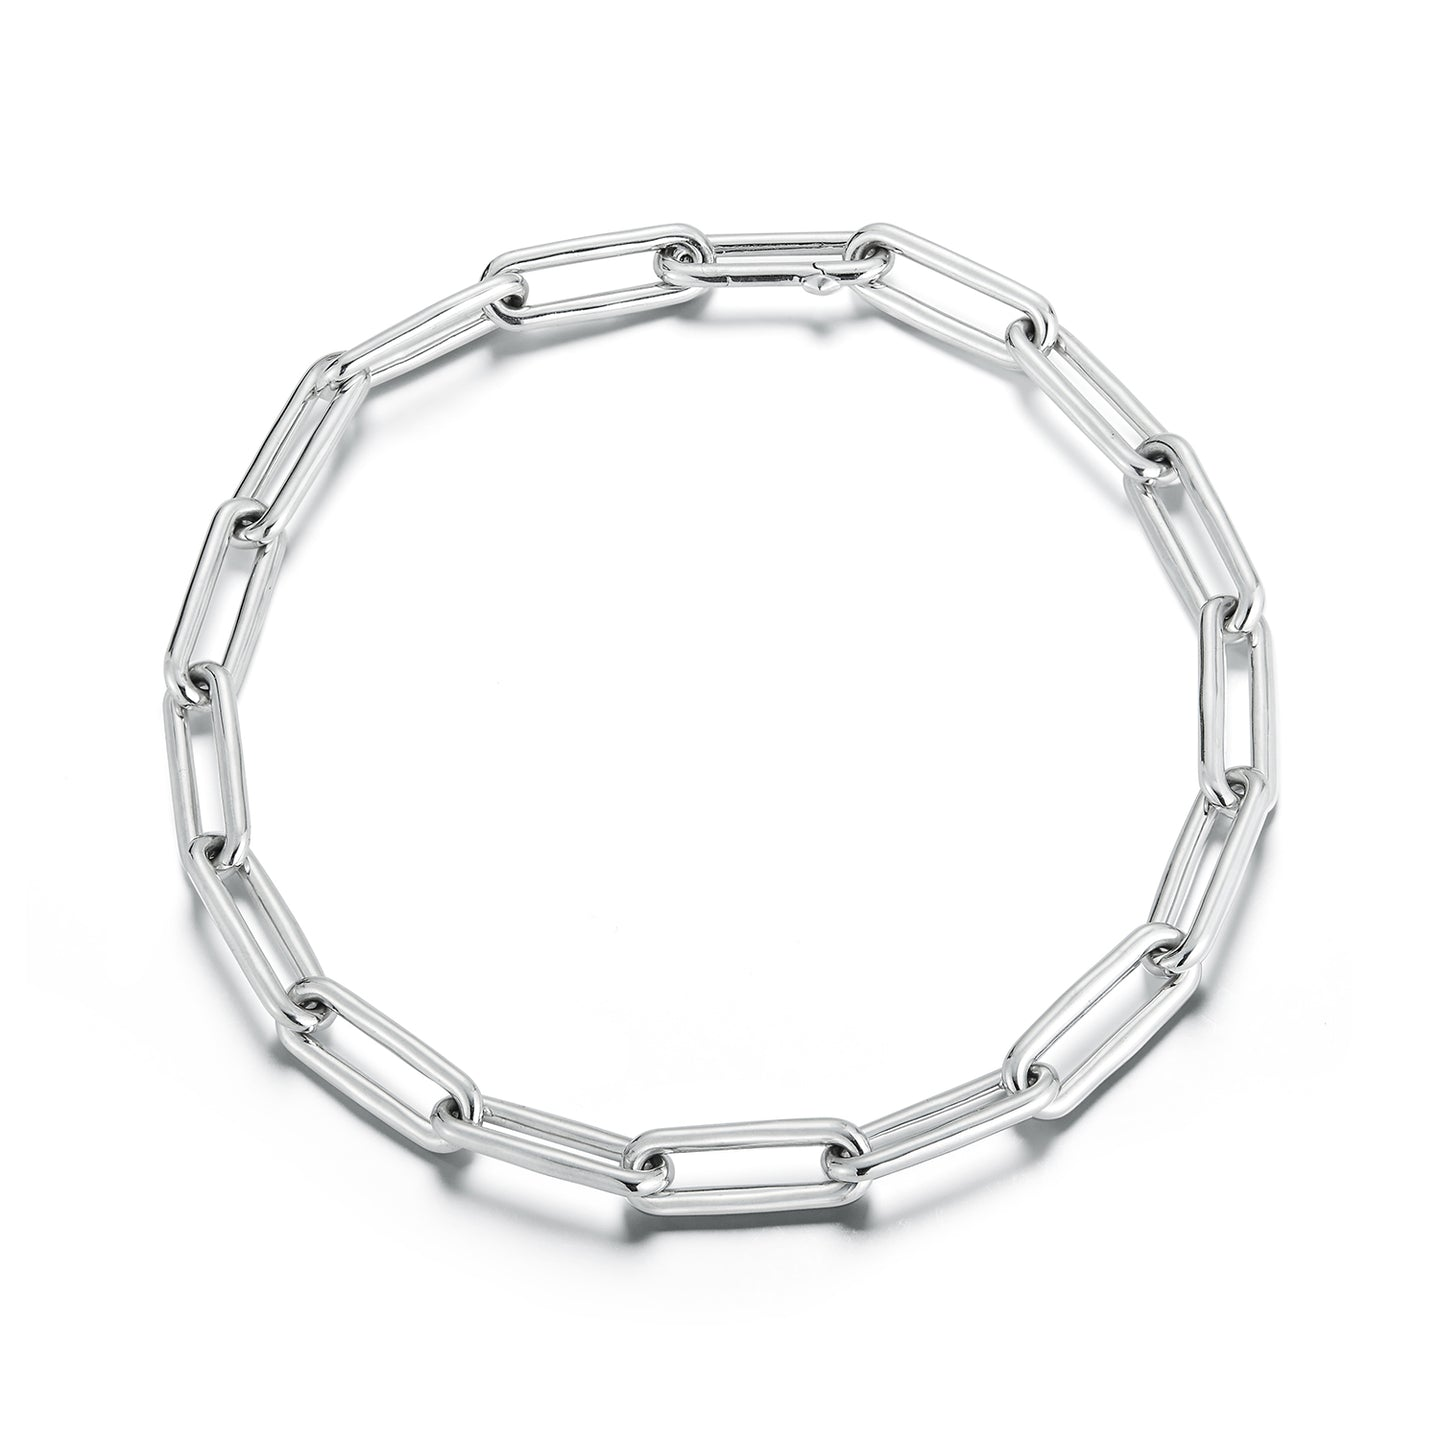 SAXON STERLING SILVER ELONGATED CHAIN LINK NECKLACE